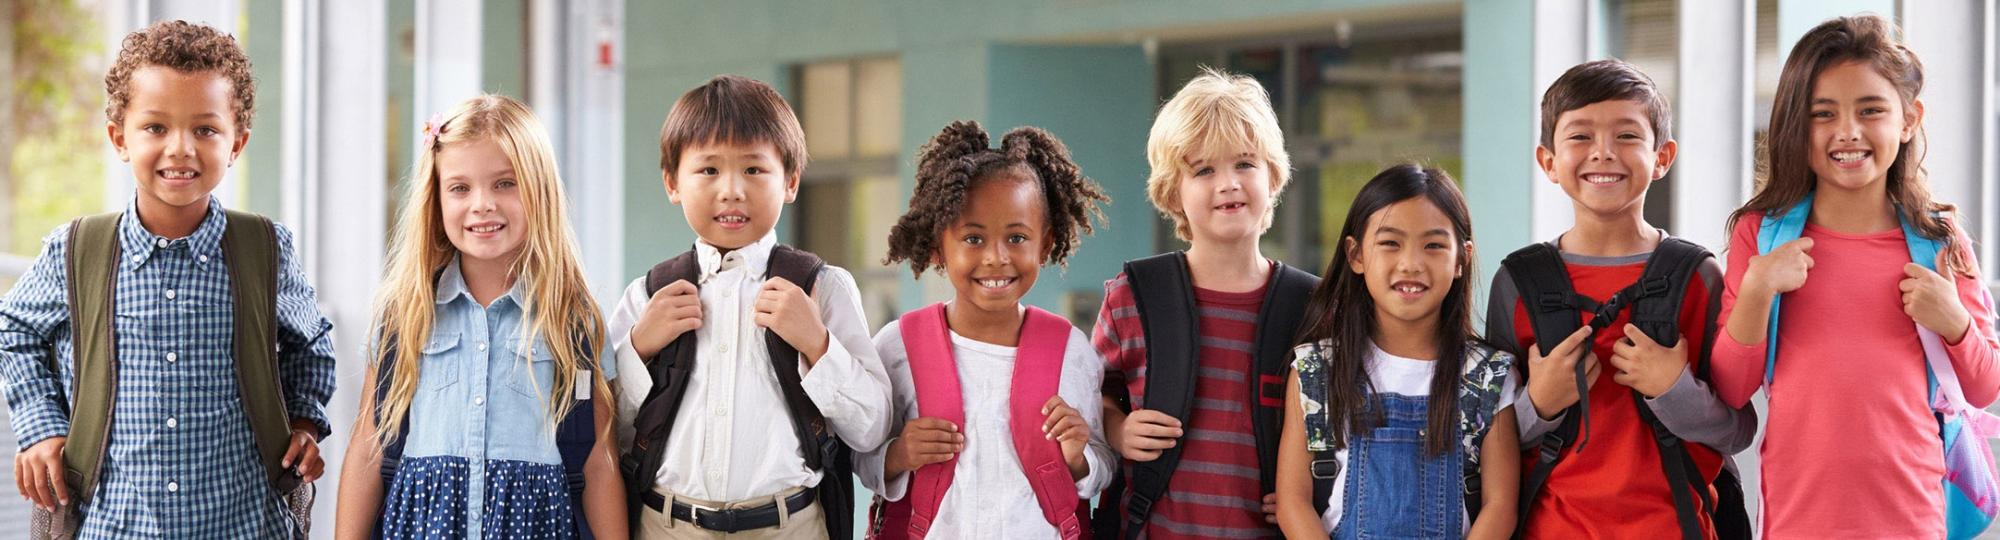 A line of smiling, diverse schoolchildren with backpacks